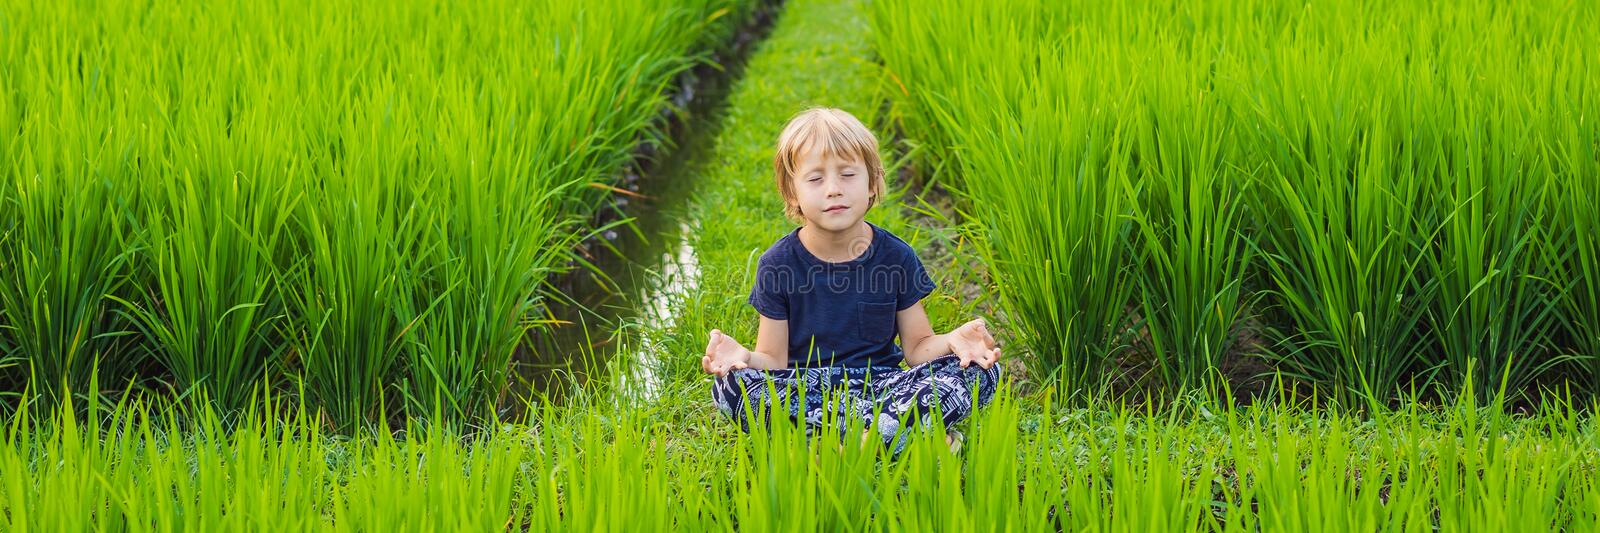 Little boy practices yoga in a rice field, outdoor. Gymnastic exercises BANNER, LONG FORMAT royalty free stock photography